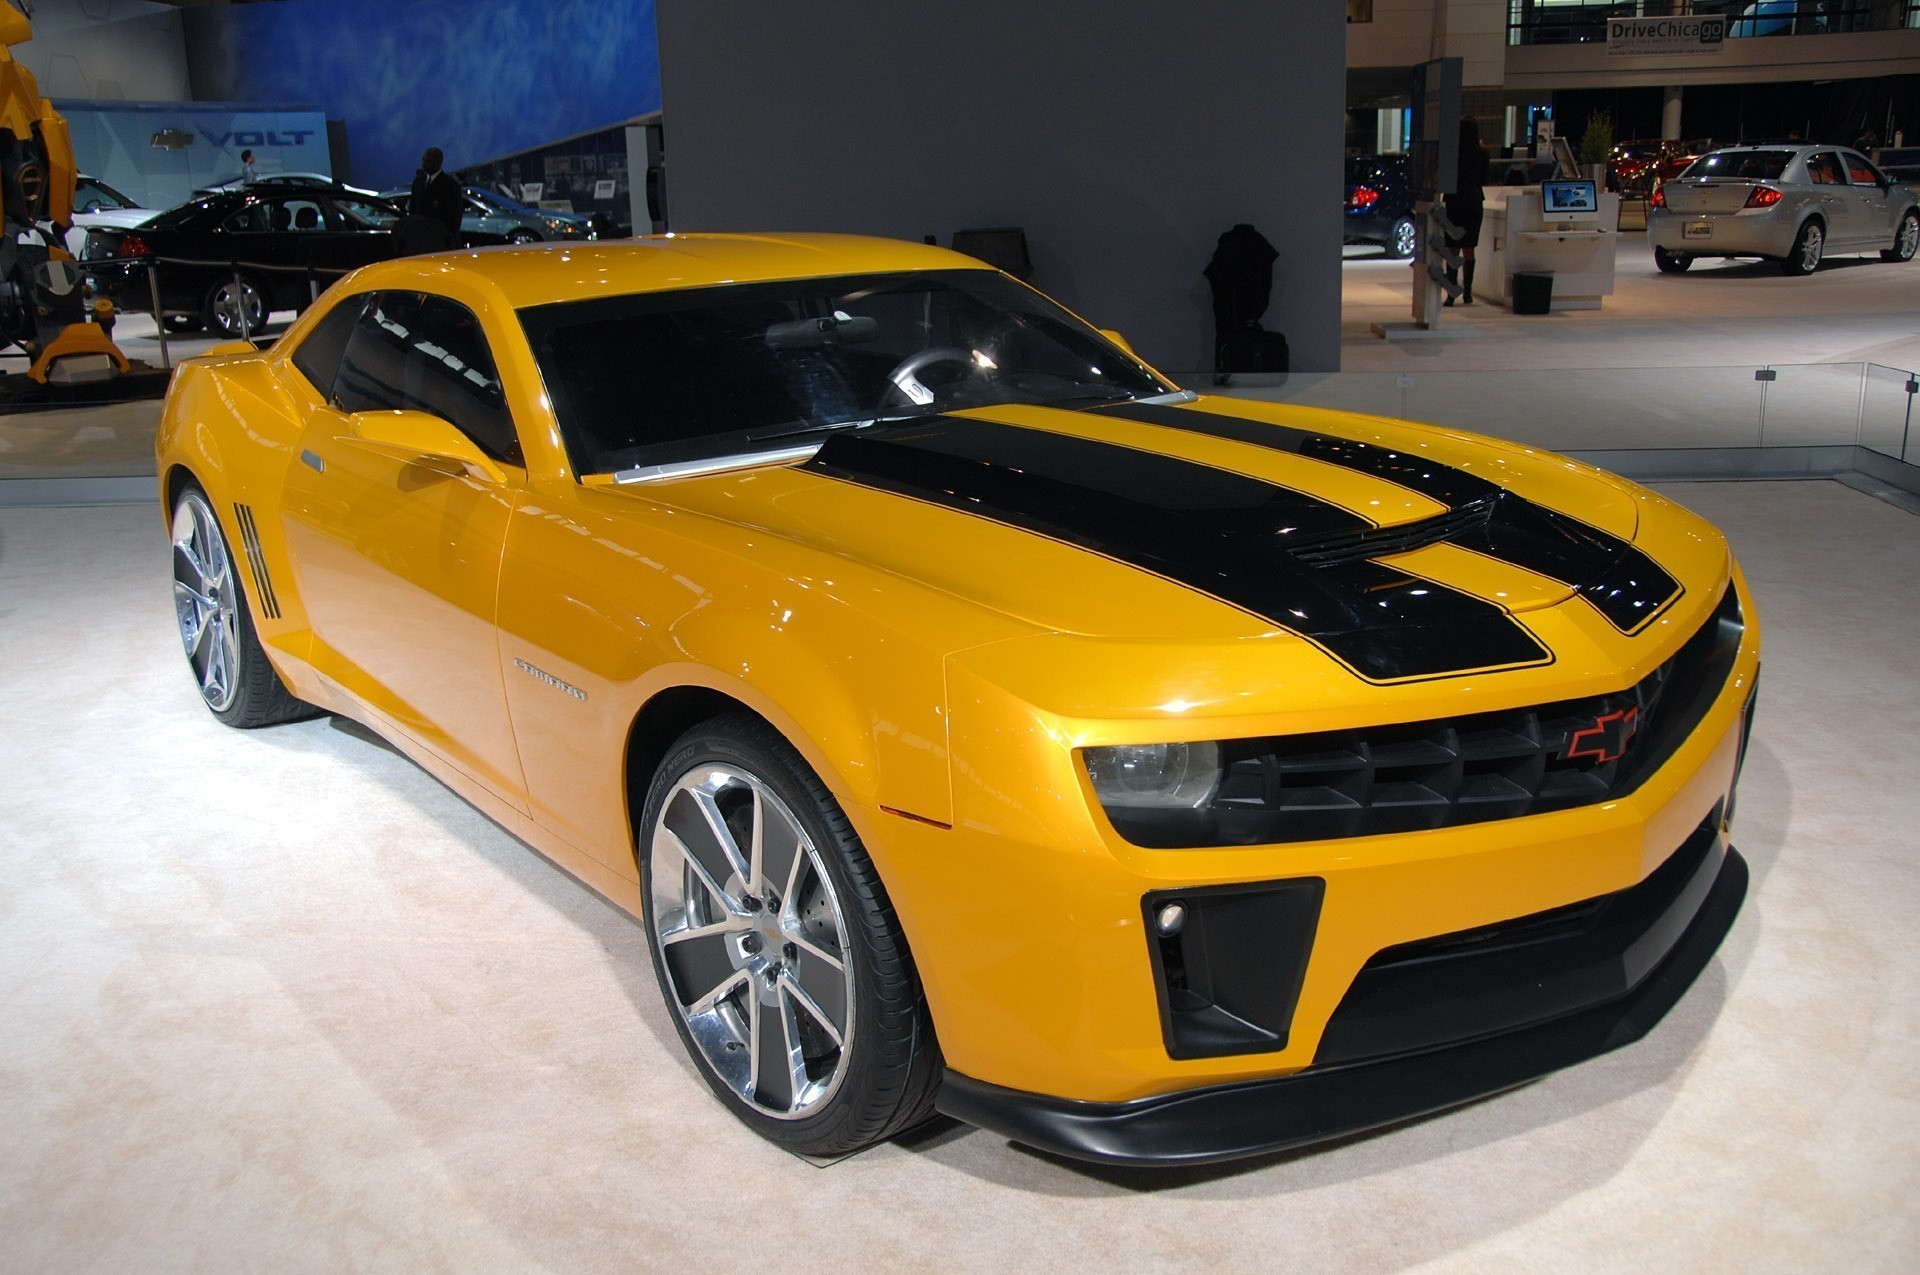 chevy bumblebee the love of future buyers car news sbt japan japanese used cars exporter. Black Bedroom Furniture Sets. Home Design Ideas